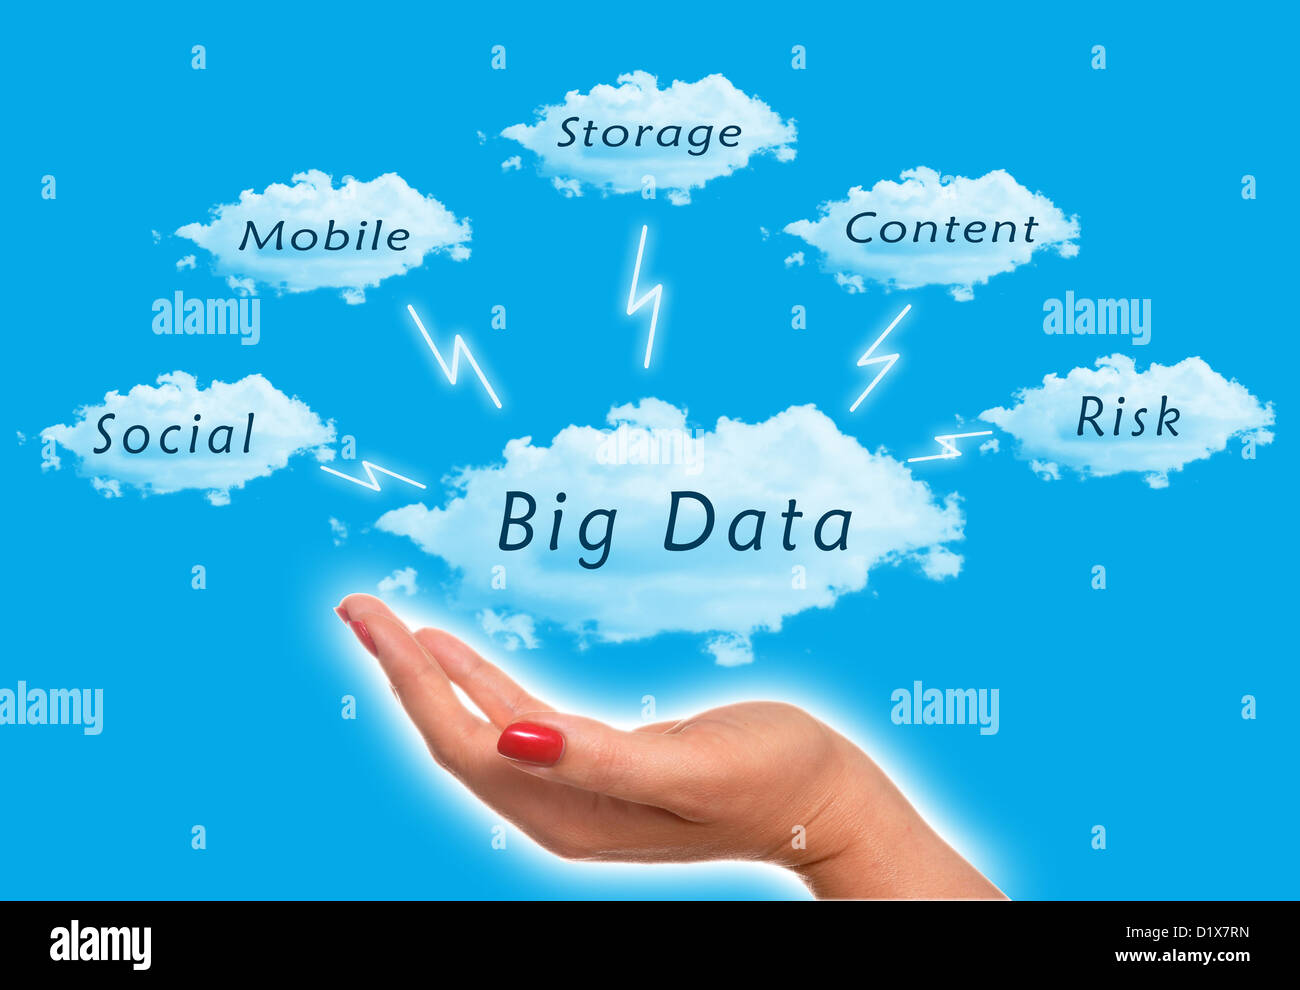 Big Data diagram with woman holding the clouds in the sky - Stock Image